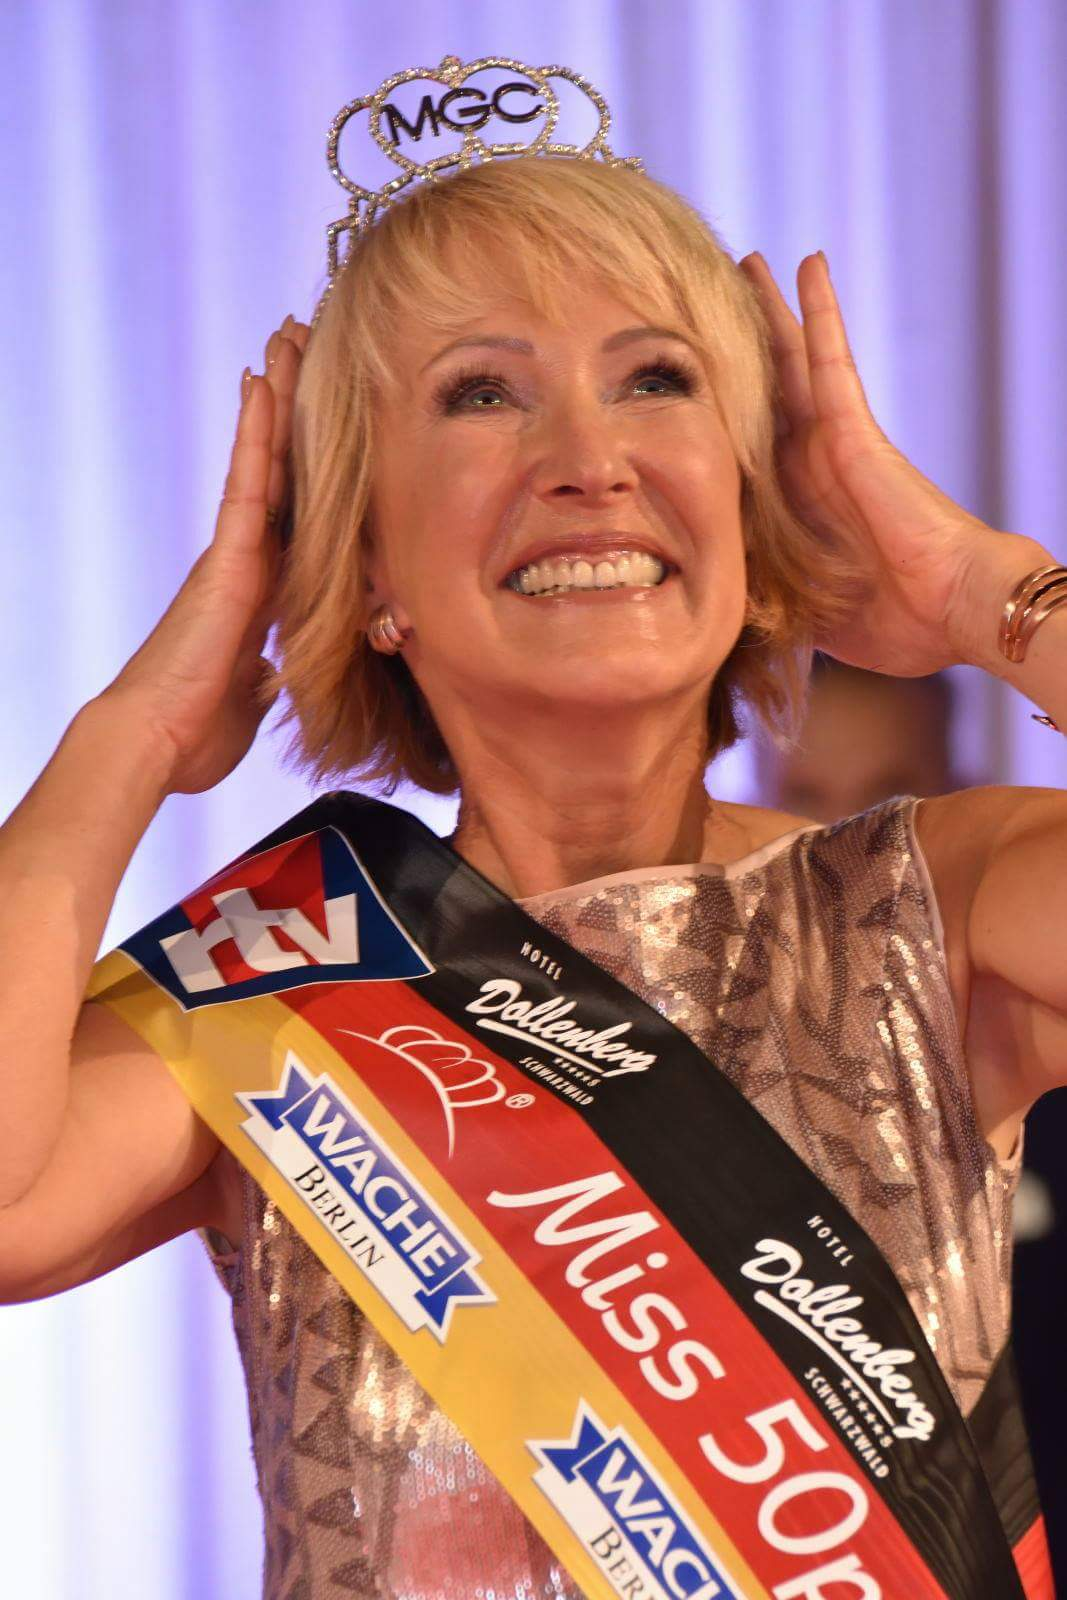 MISS 50 PLUS GERMANY WAHL 2017